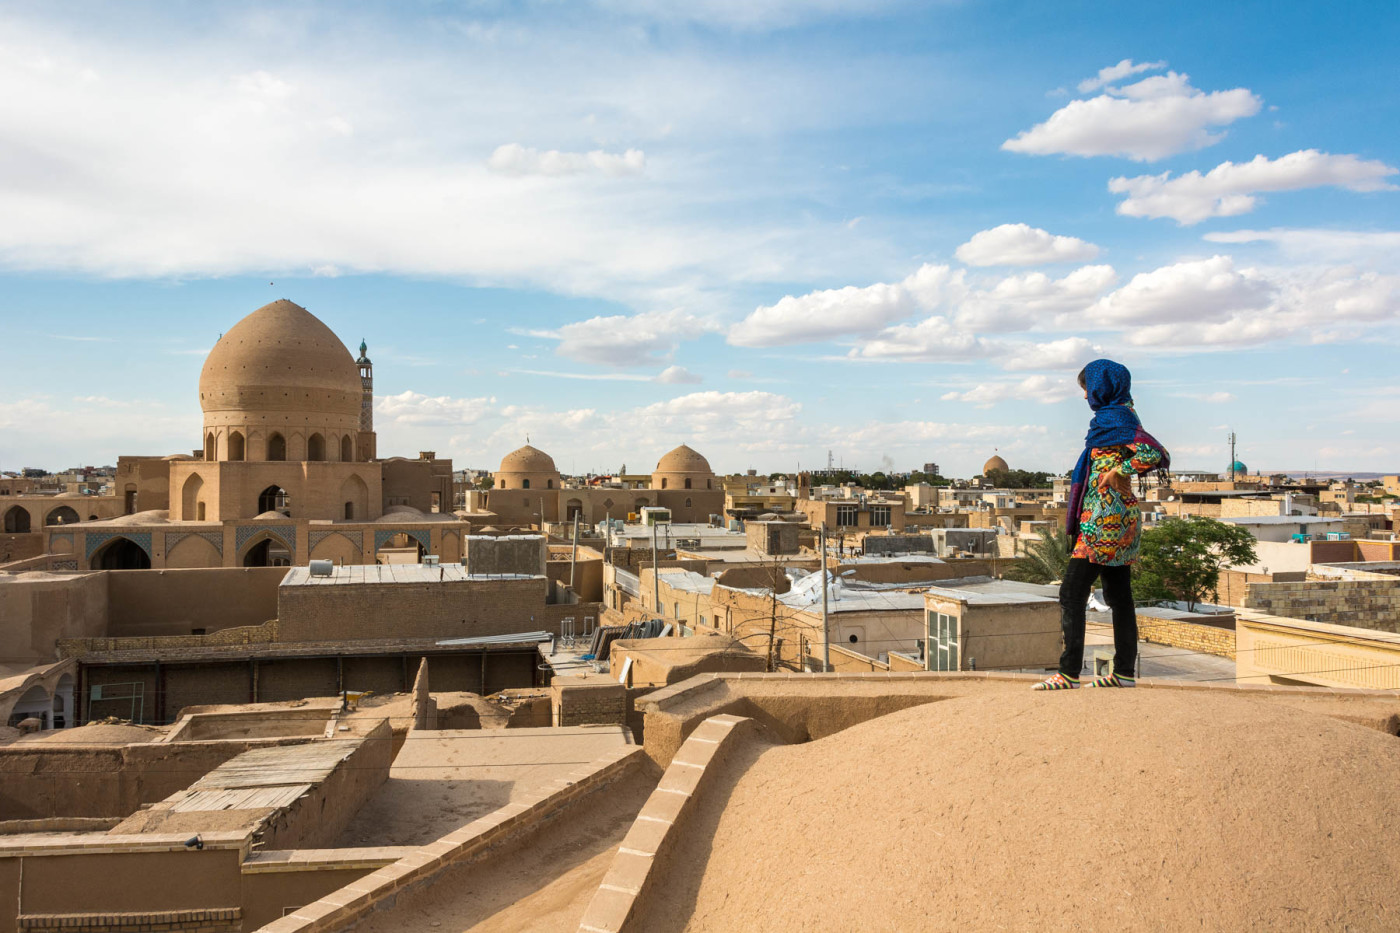 """Rocking the demure Iranian ladydress (more formally known as a """"manteau"""") on the rooftops of Kashan."""